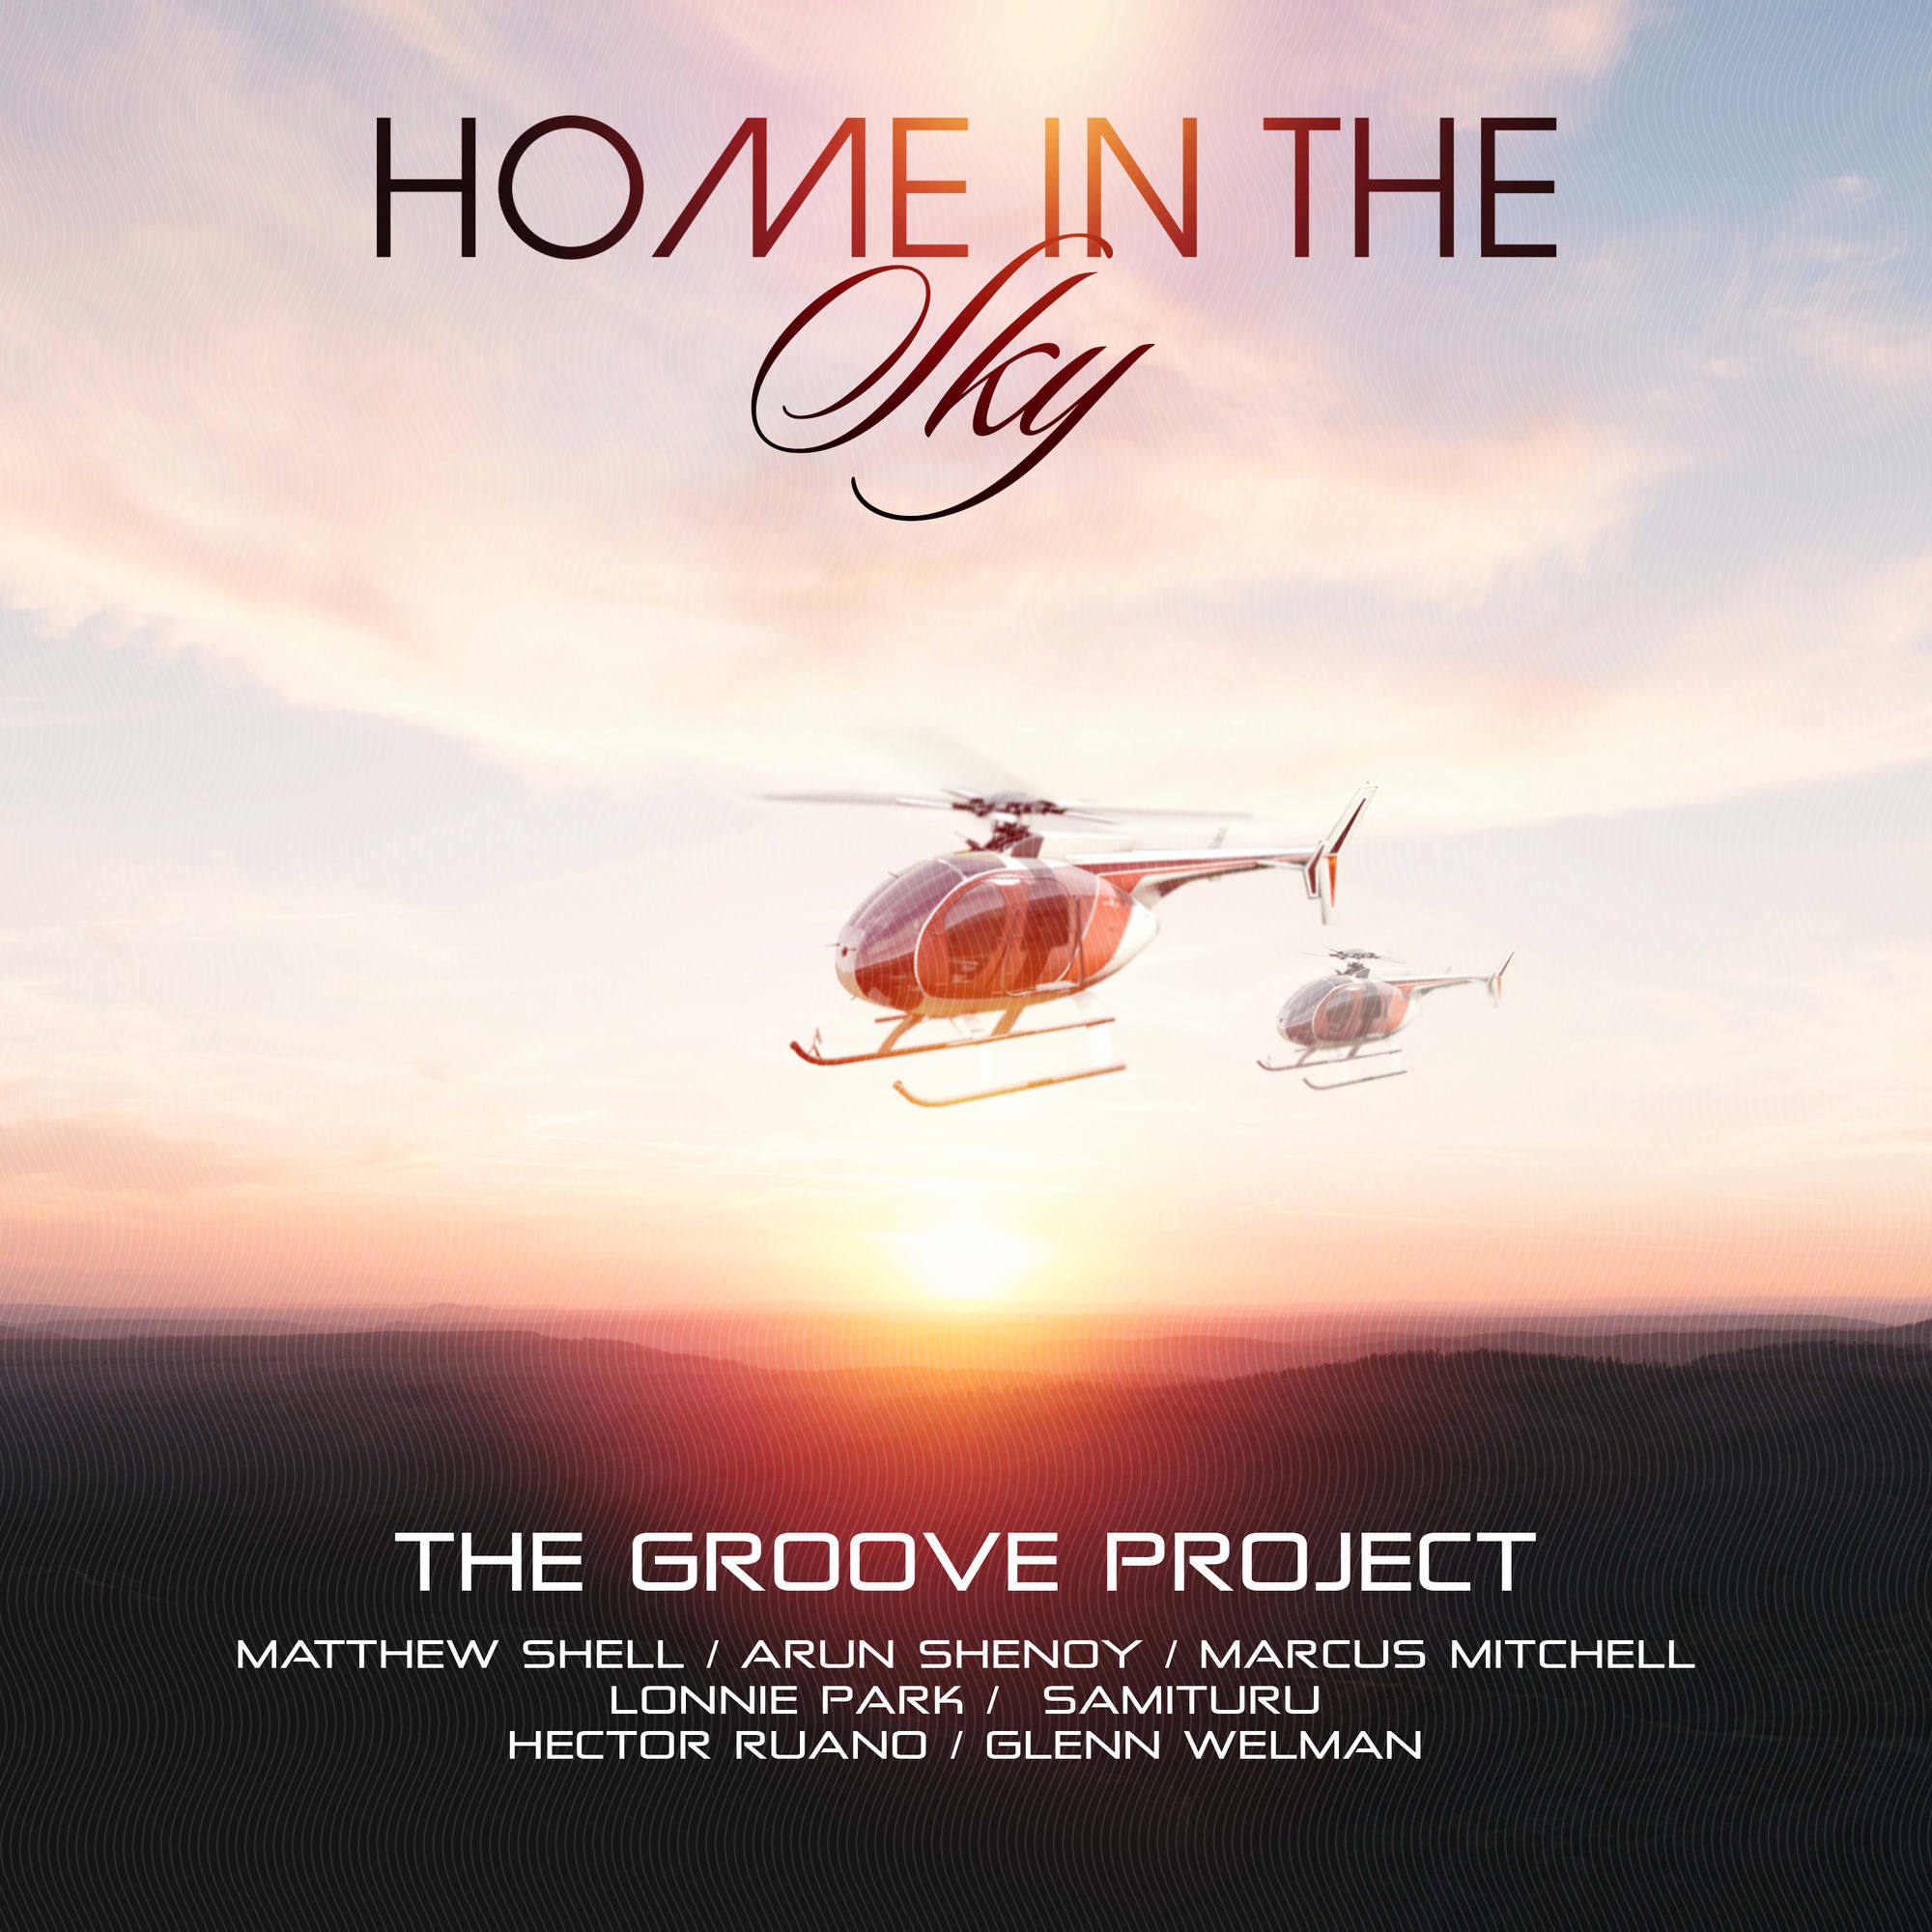 01. Home in the Sky